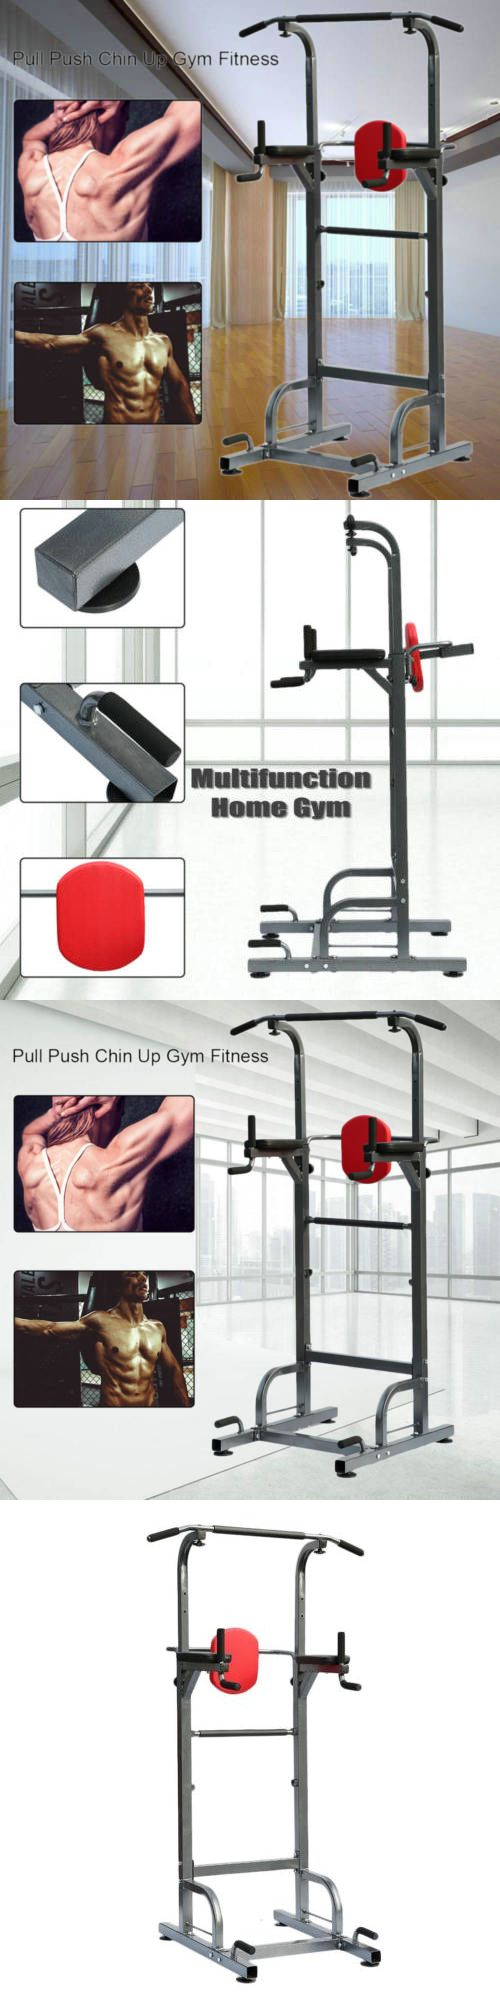 Push Up Stands 158925: Dip Station Power Tower Pull Push Bar Chin Up Home Gym Fitness Center Heavy Duty -> BUY IT NOW ONLY: $119.99 on eBay!